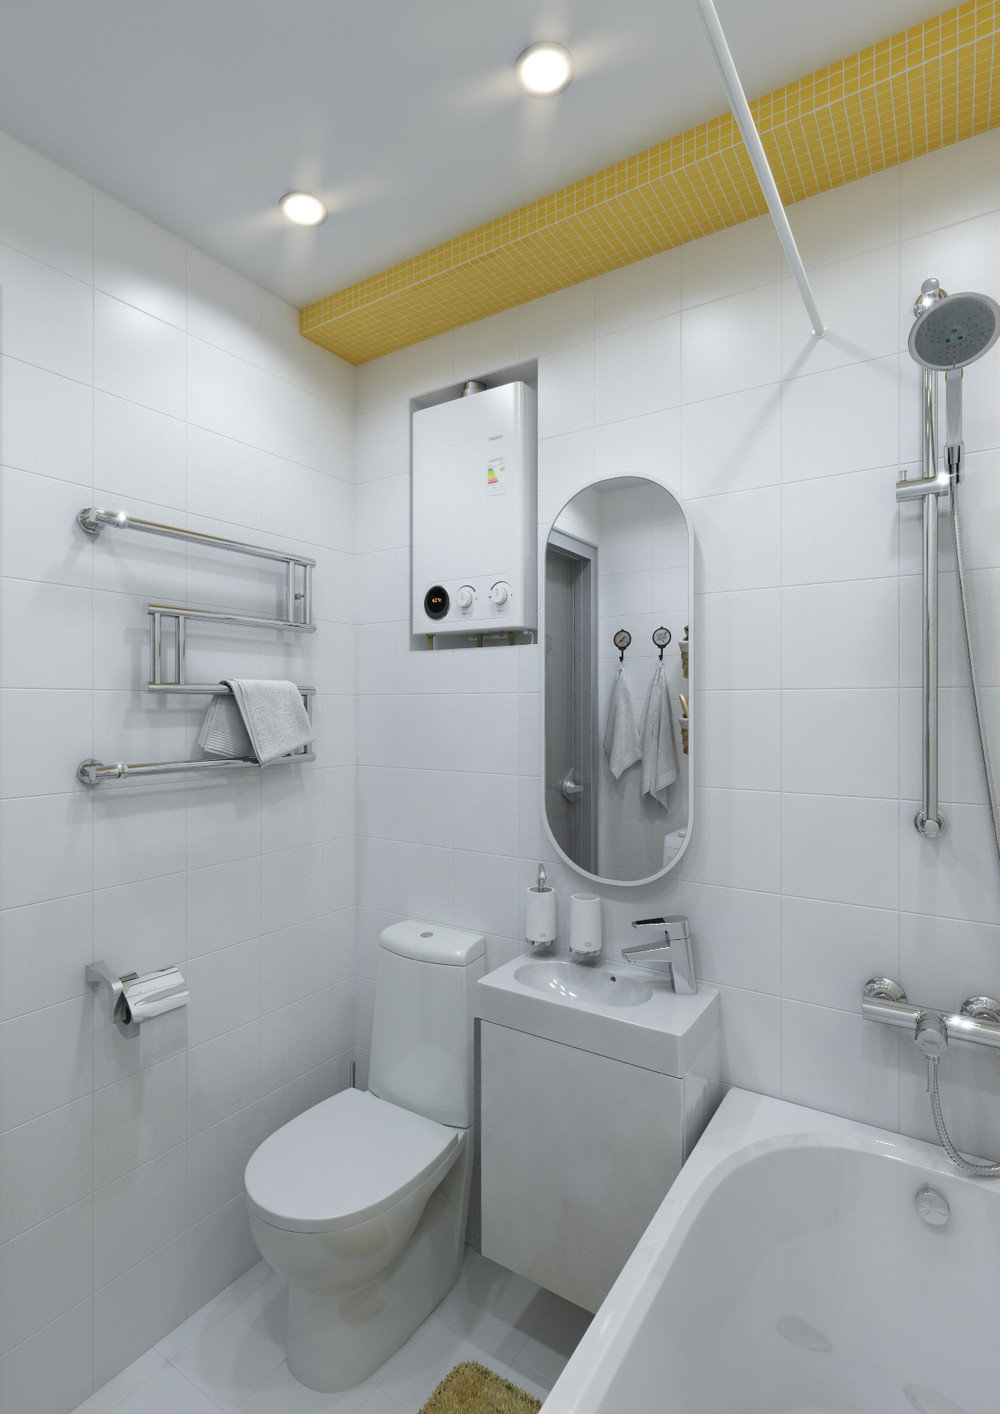 Tiny White Bathroom Ideas - 4 inspiring home designs under 300 square feet with floor plans